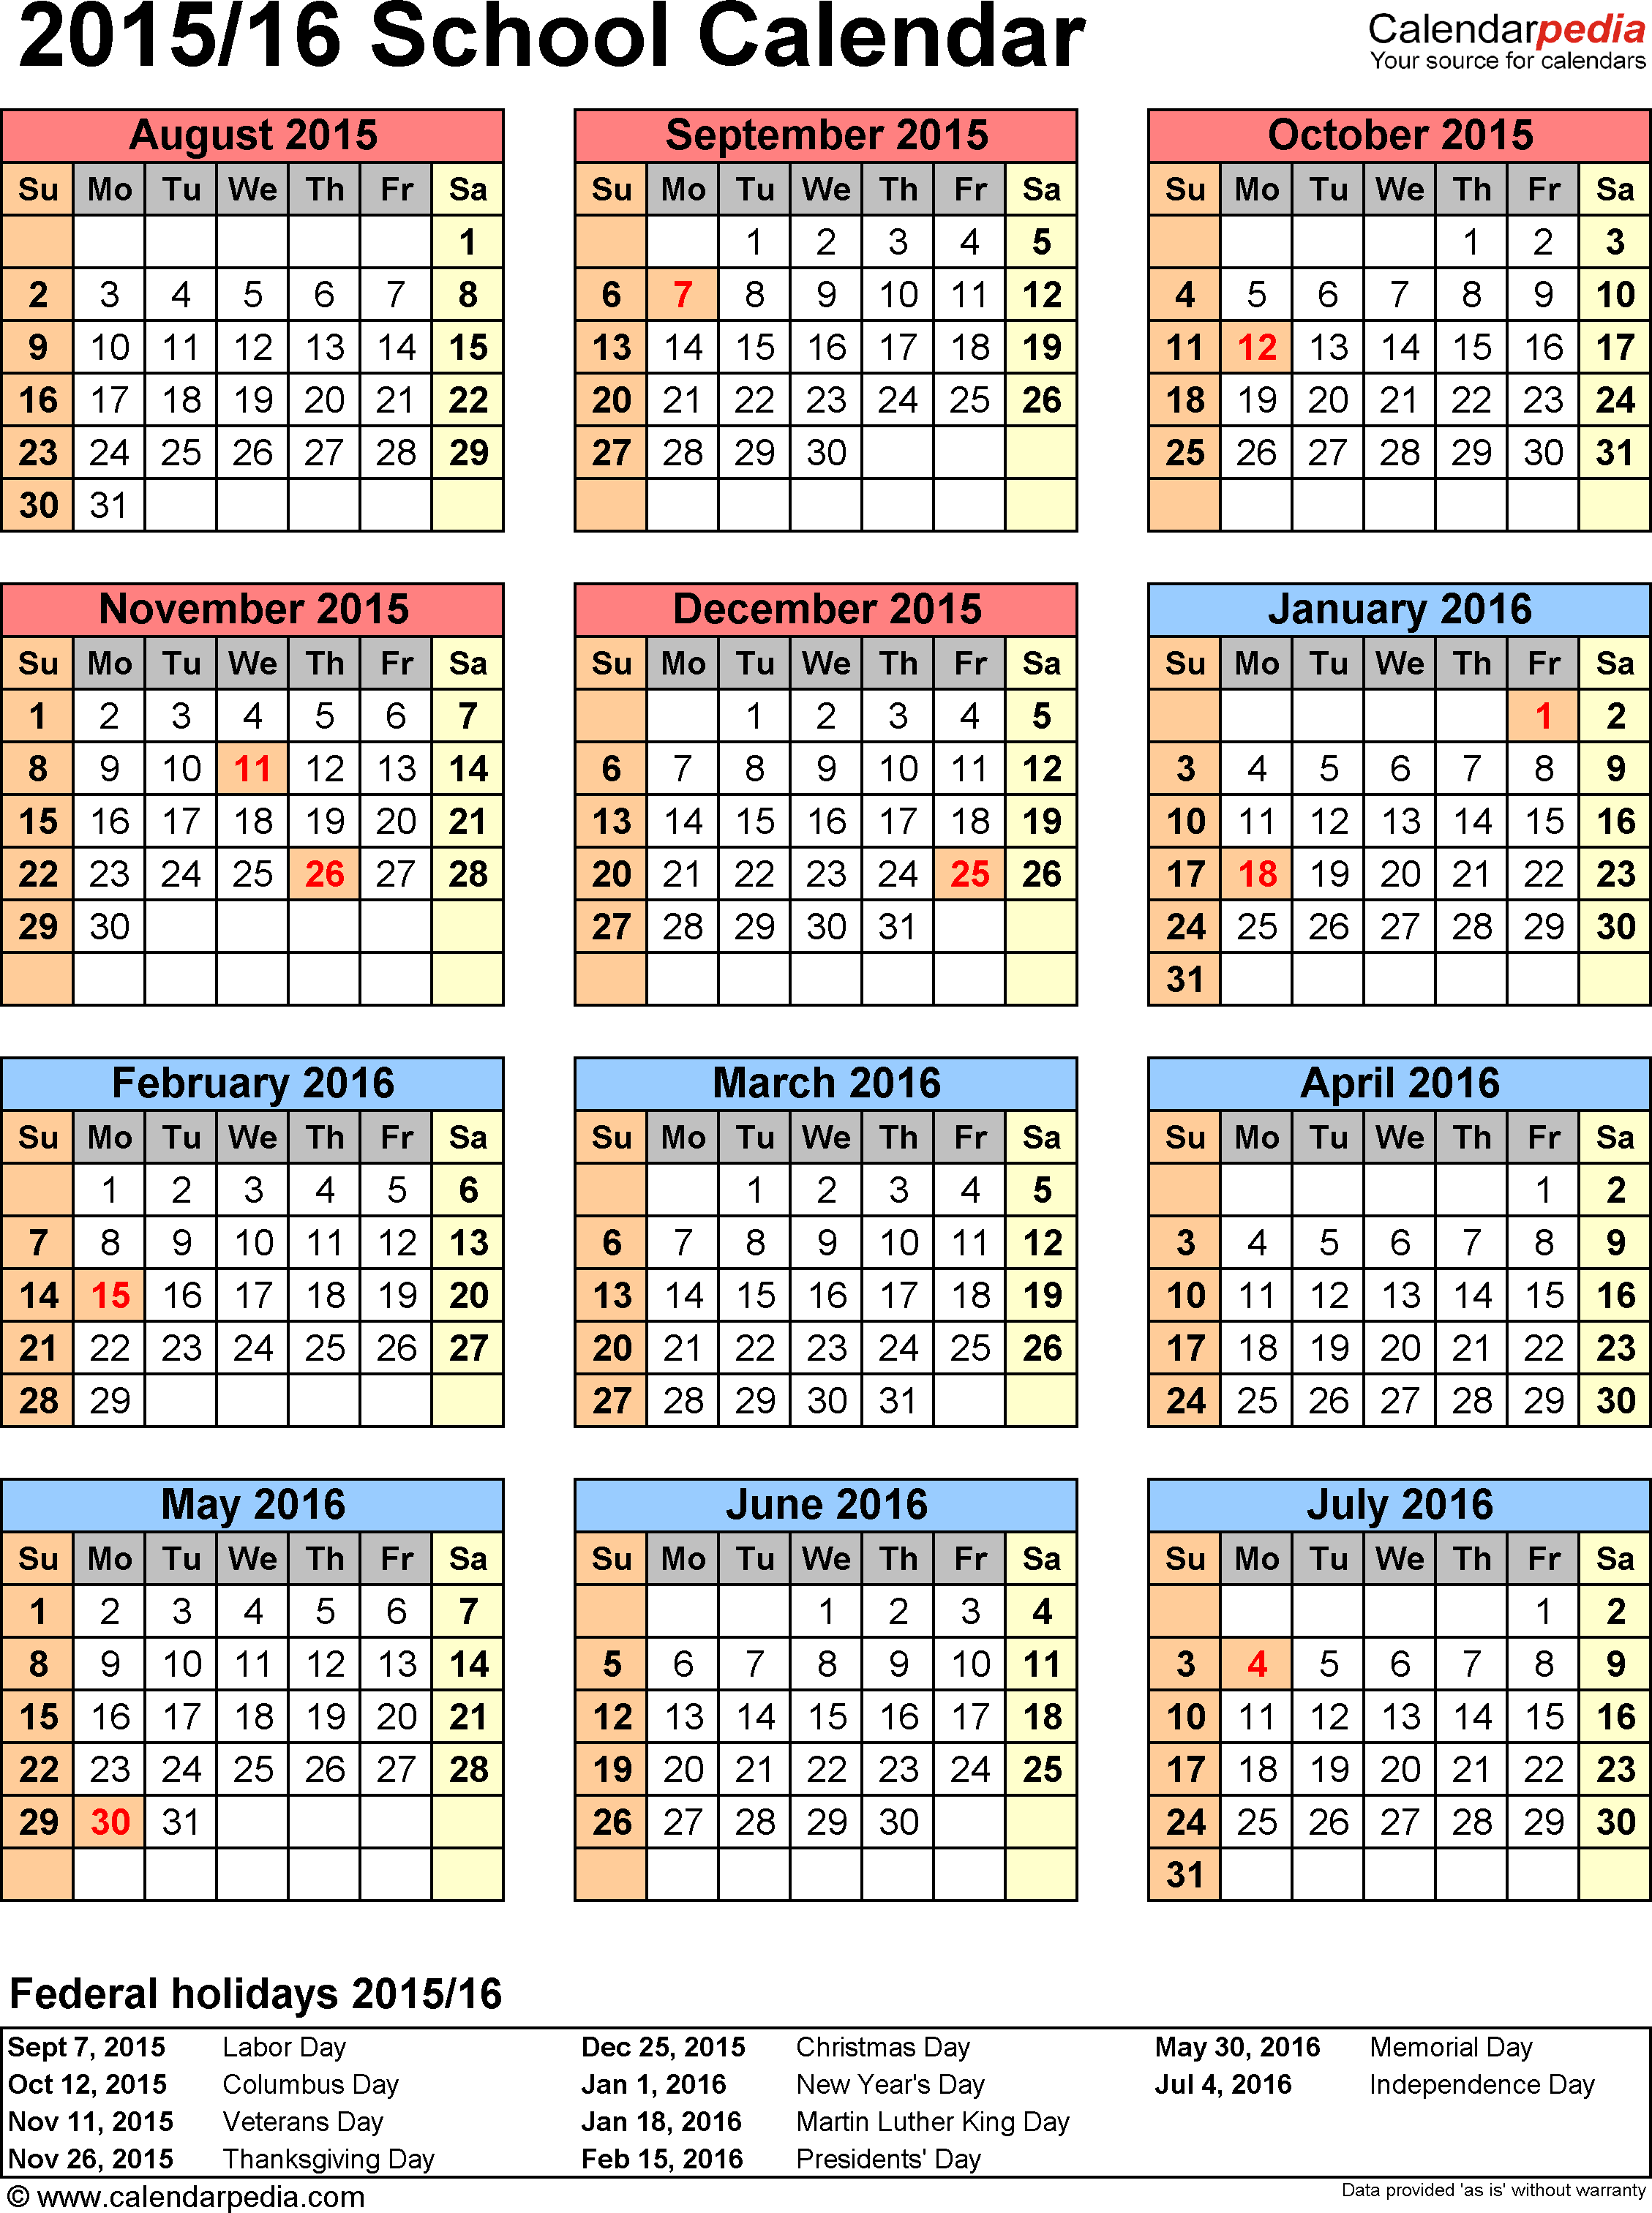 Download Template 7: School calendar 2015/16 for Microsoft Excel (.xlsx file), portrait, 1 page, year at a glance